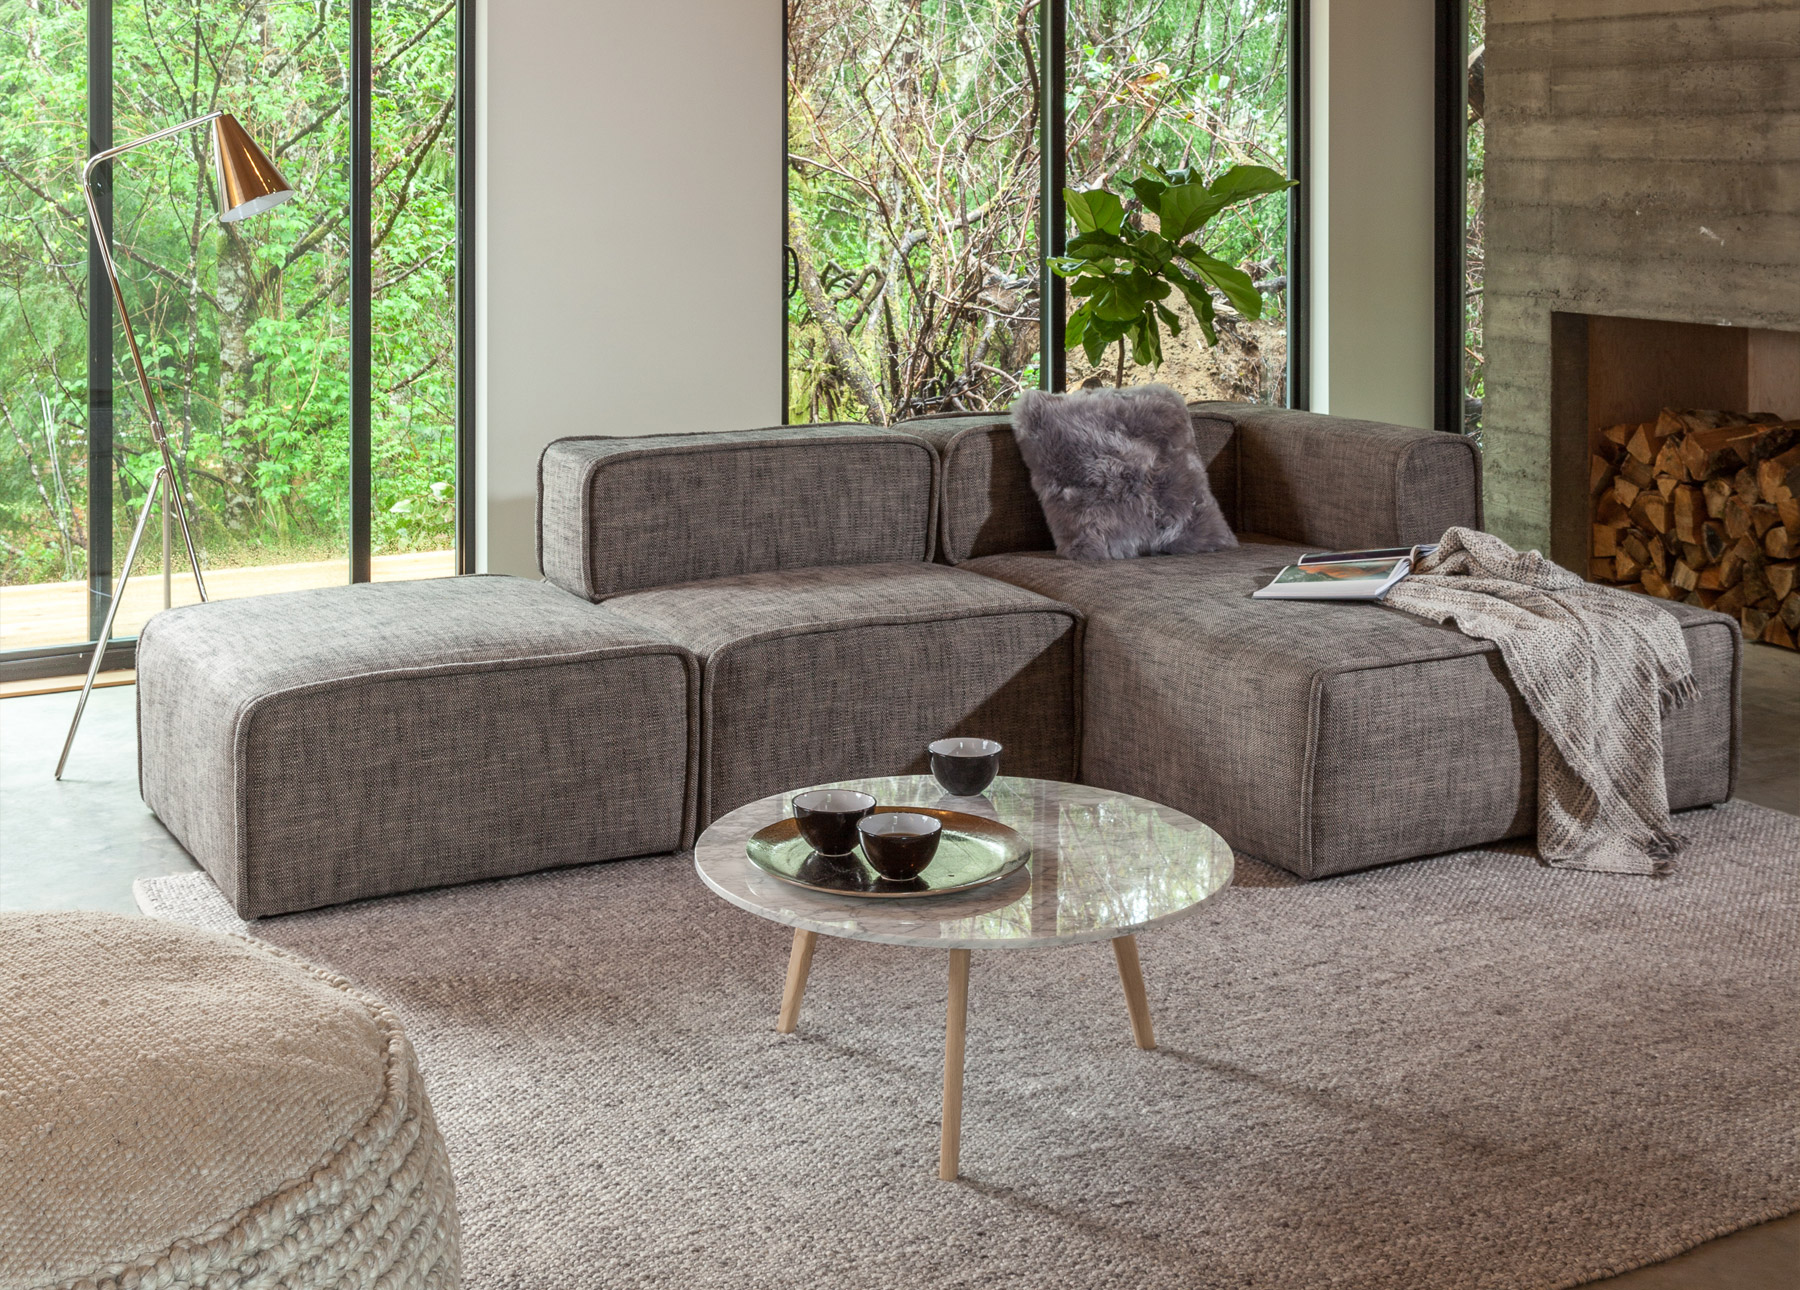 Dedicated Apartment Width Sofas And Customizable Modular Sectionals Like Quadra Work Great For Small Living Es